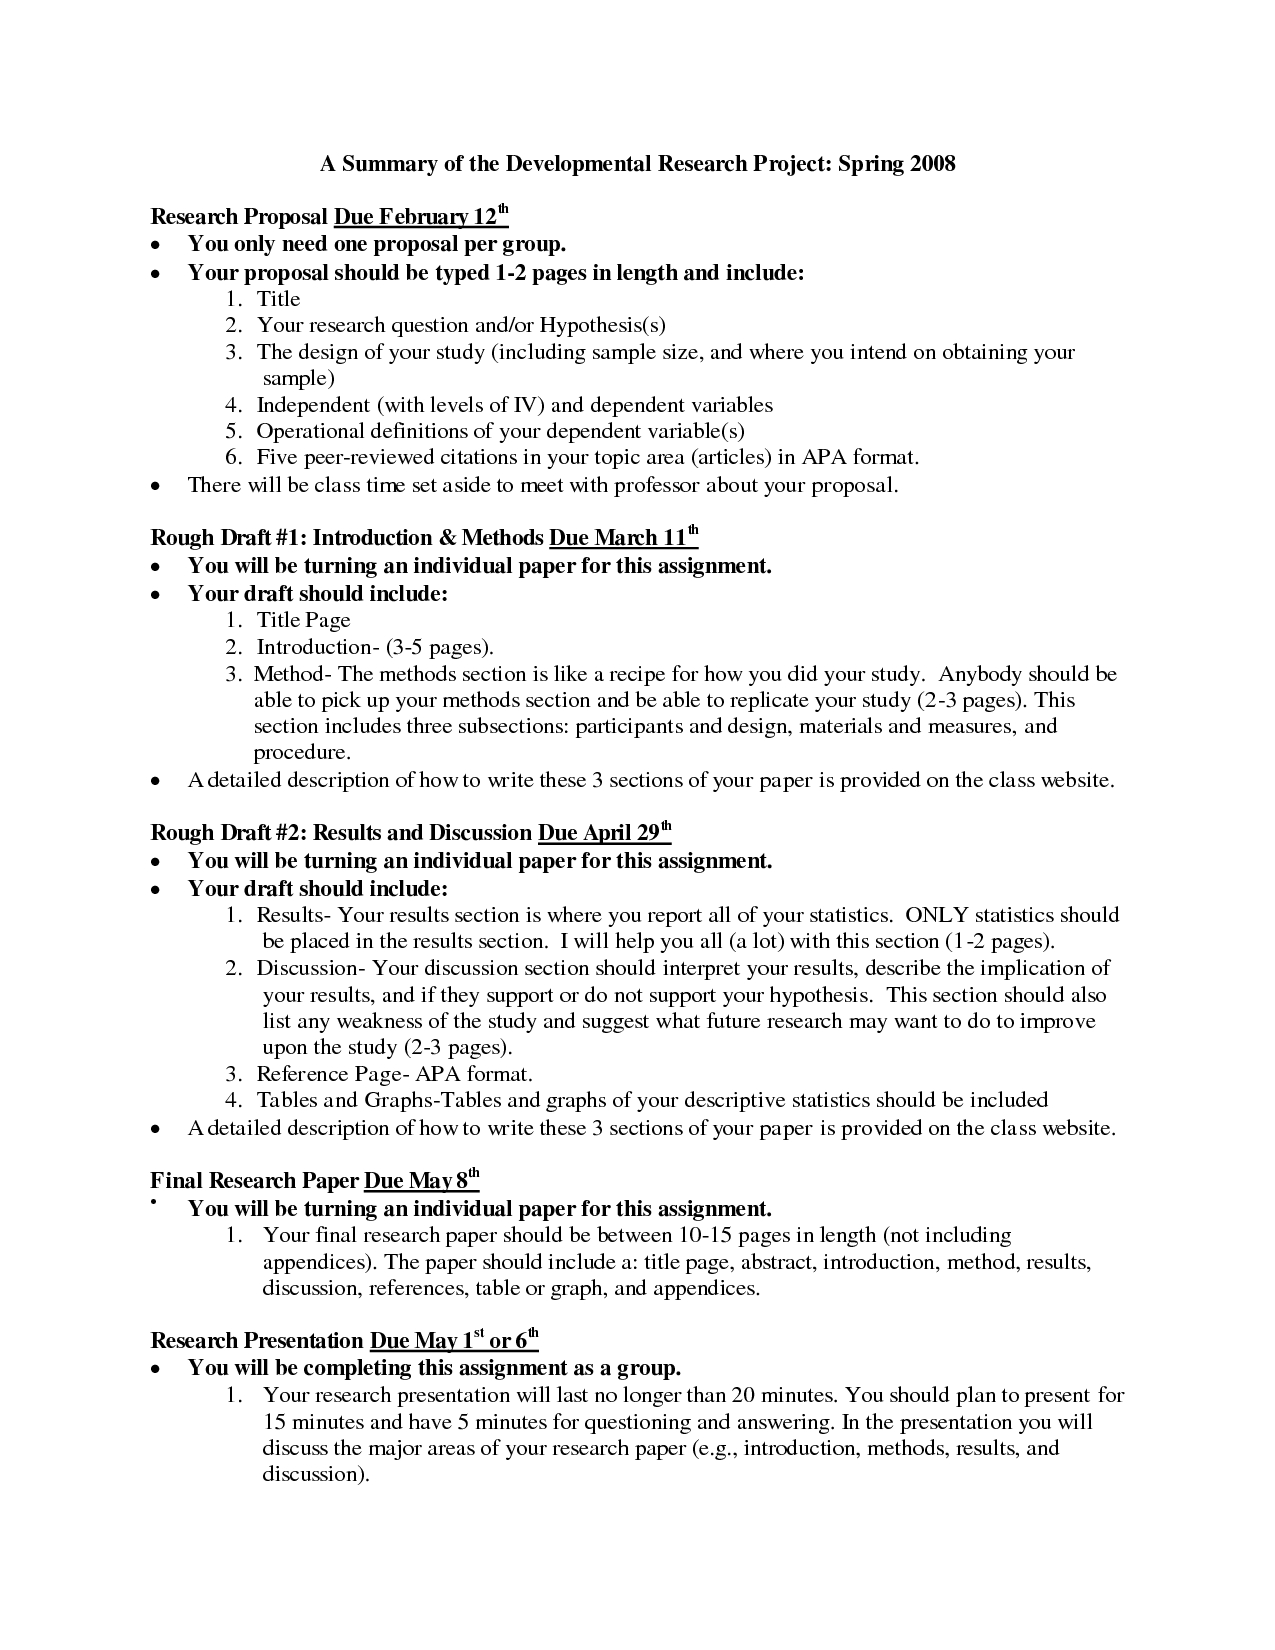 012 Good Research Paper Topic Psychology Undergraduate Resume Unique Sample Singular Topics History Reddit Argumentative About Sports Full